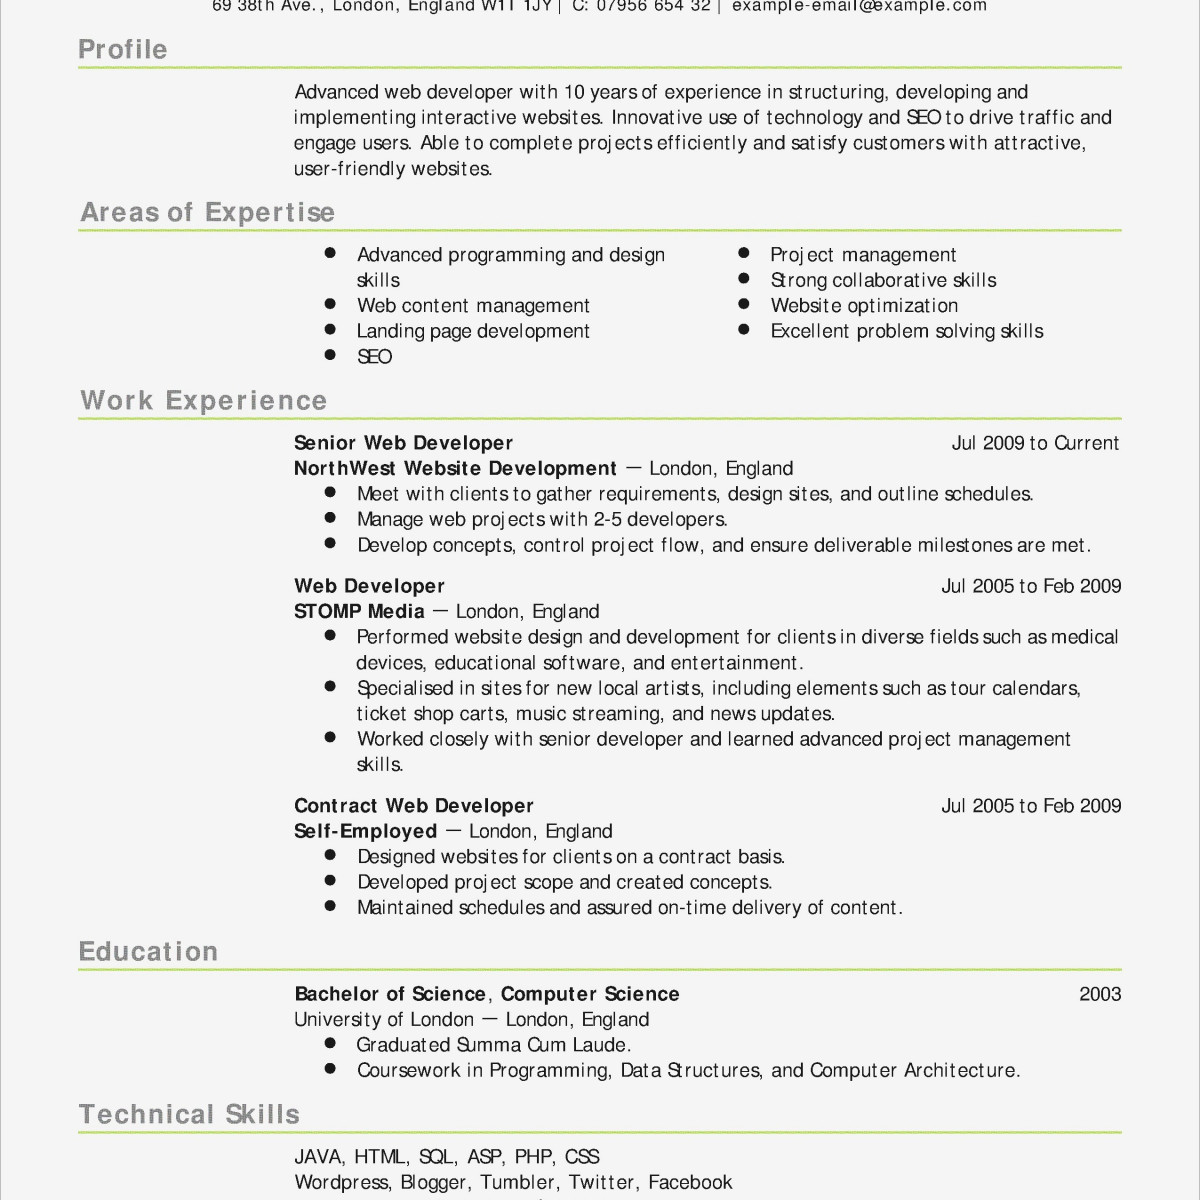 My Perfect Resume Prices - How to Cancel My Perfect Resume Subscription Elegant My Perfect